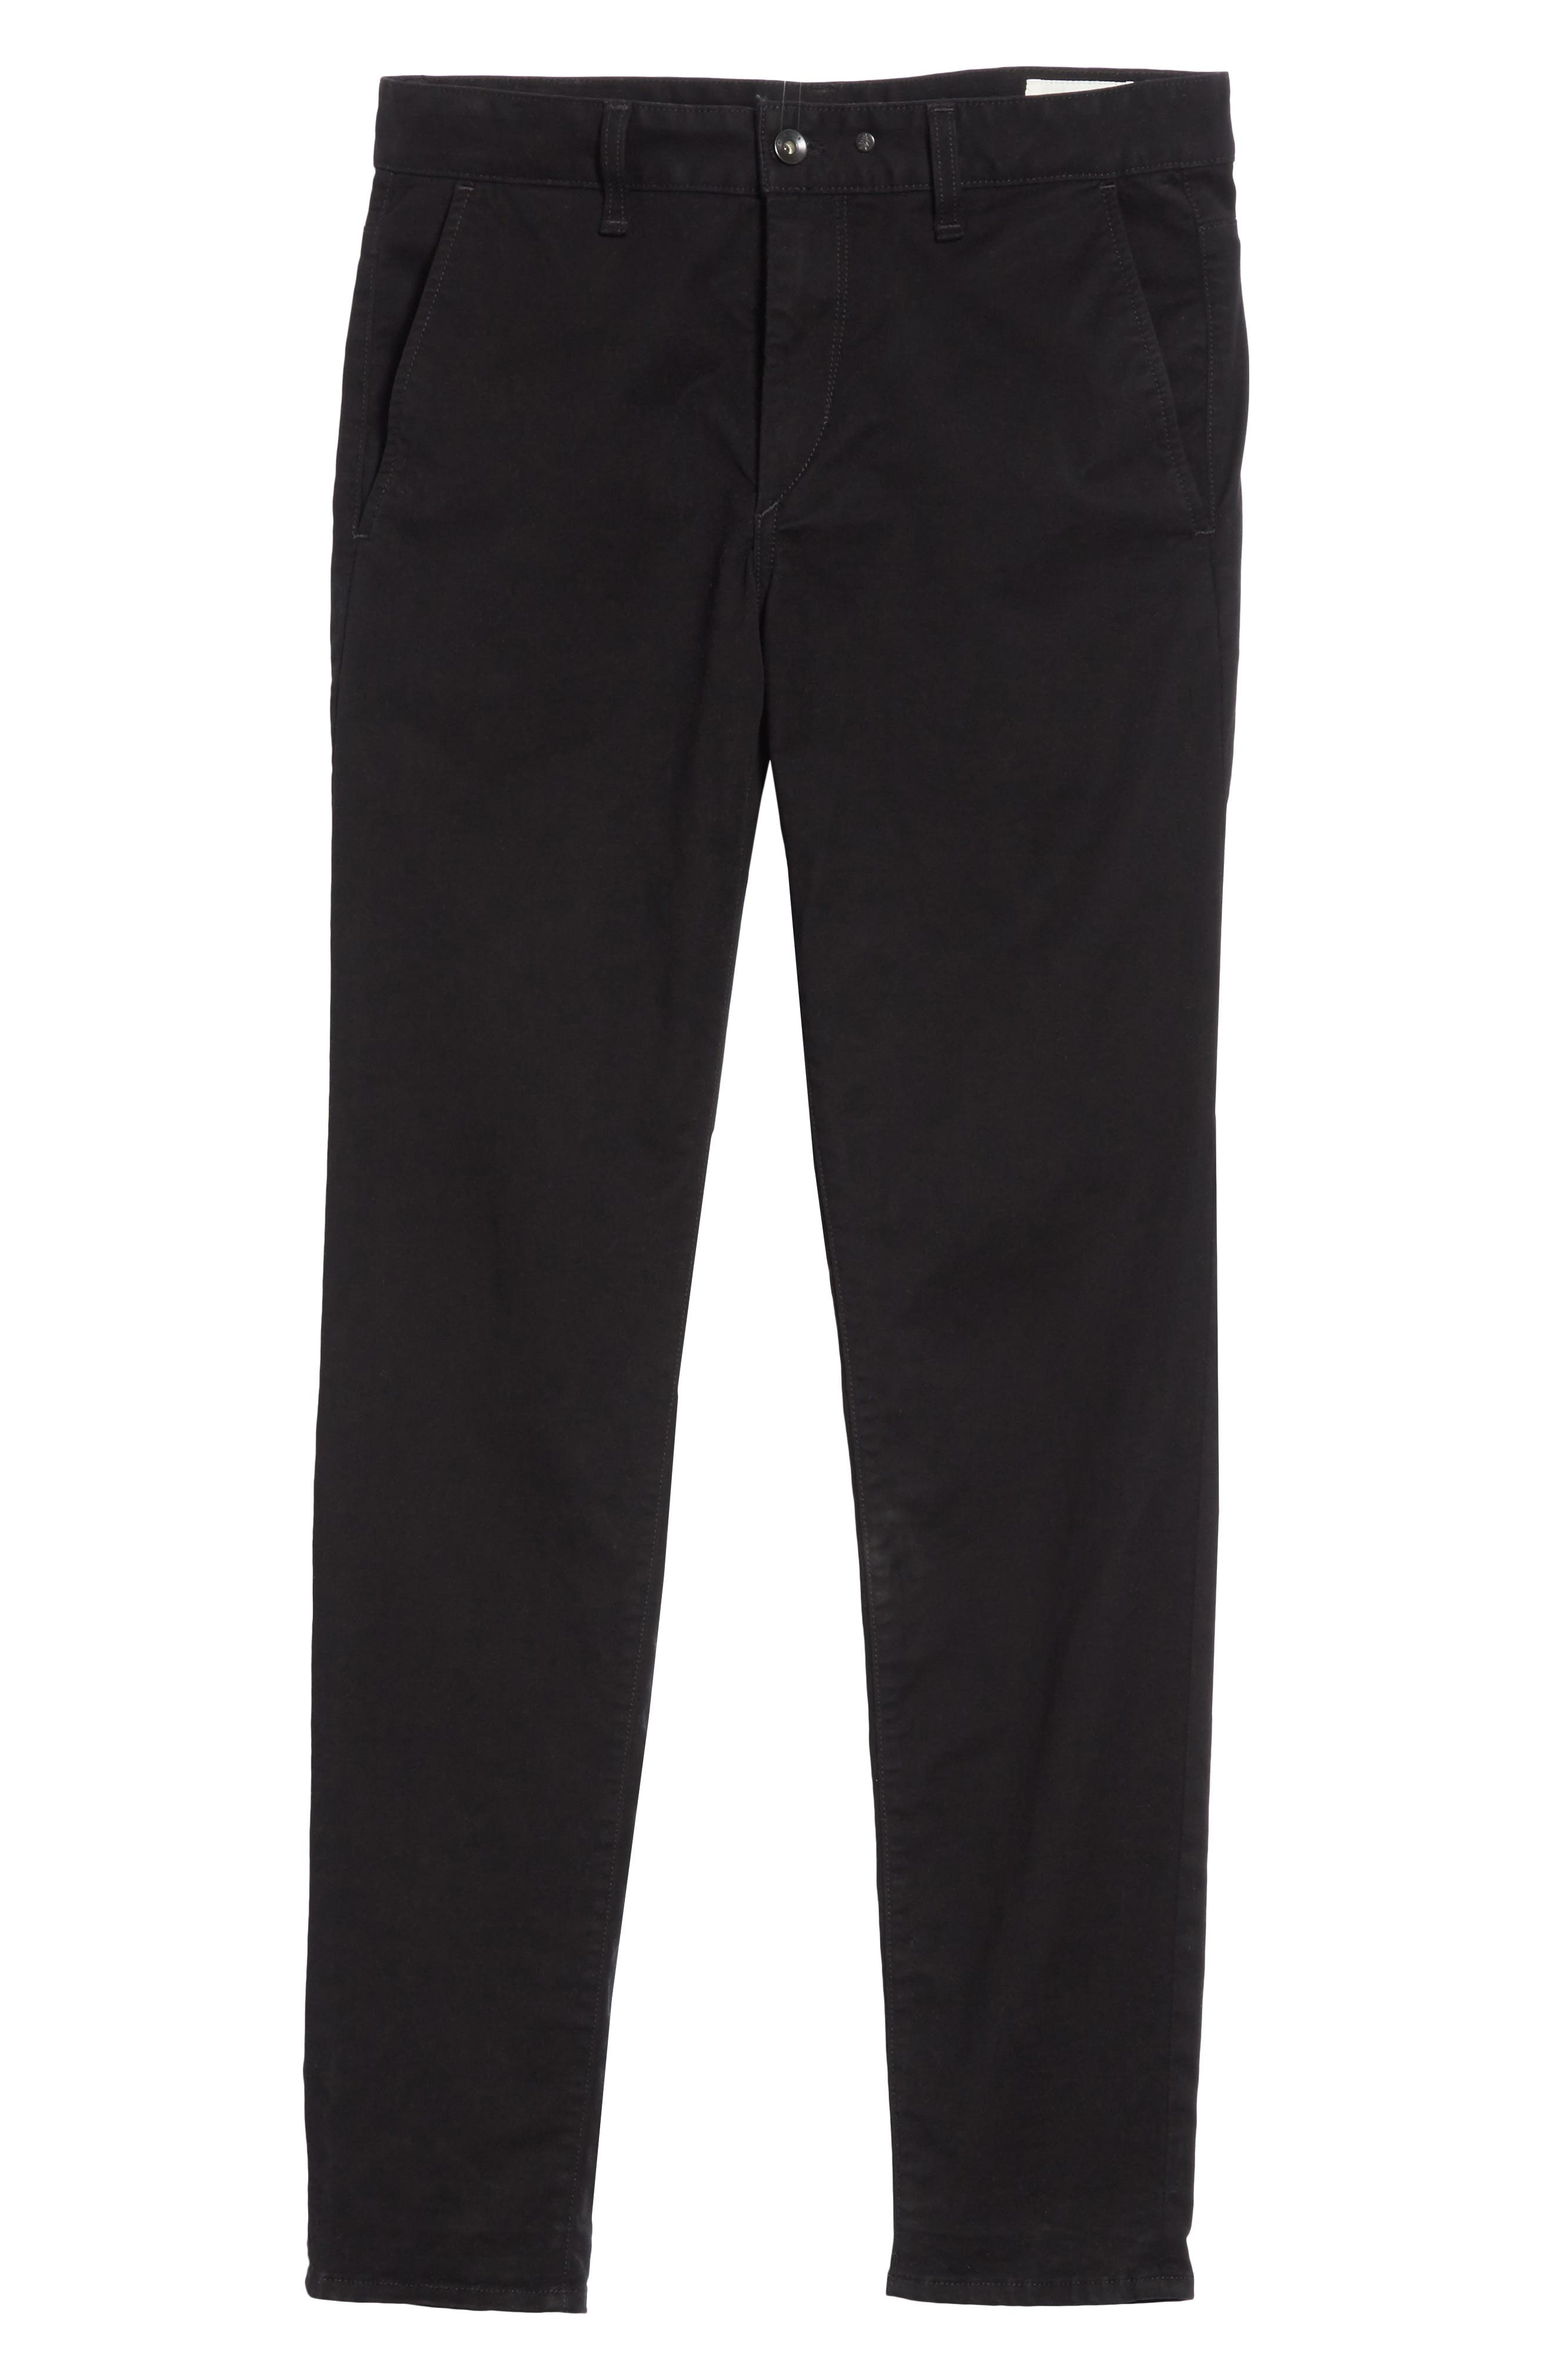 Fit 1 Chinos,                             Alternate thumbnail 6, color,                             Black